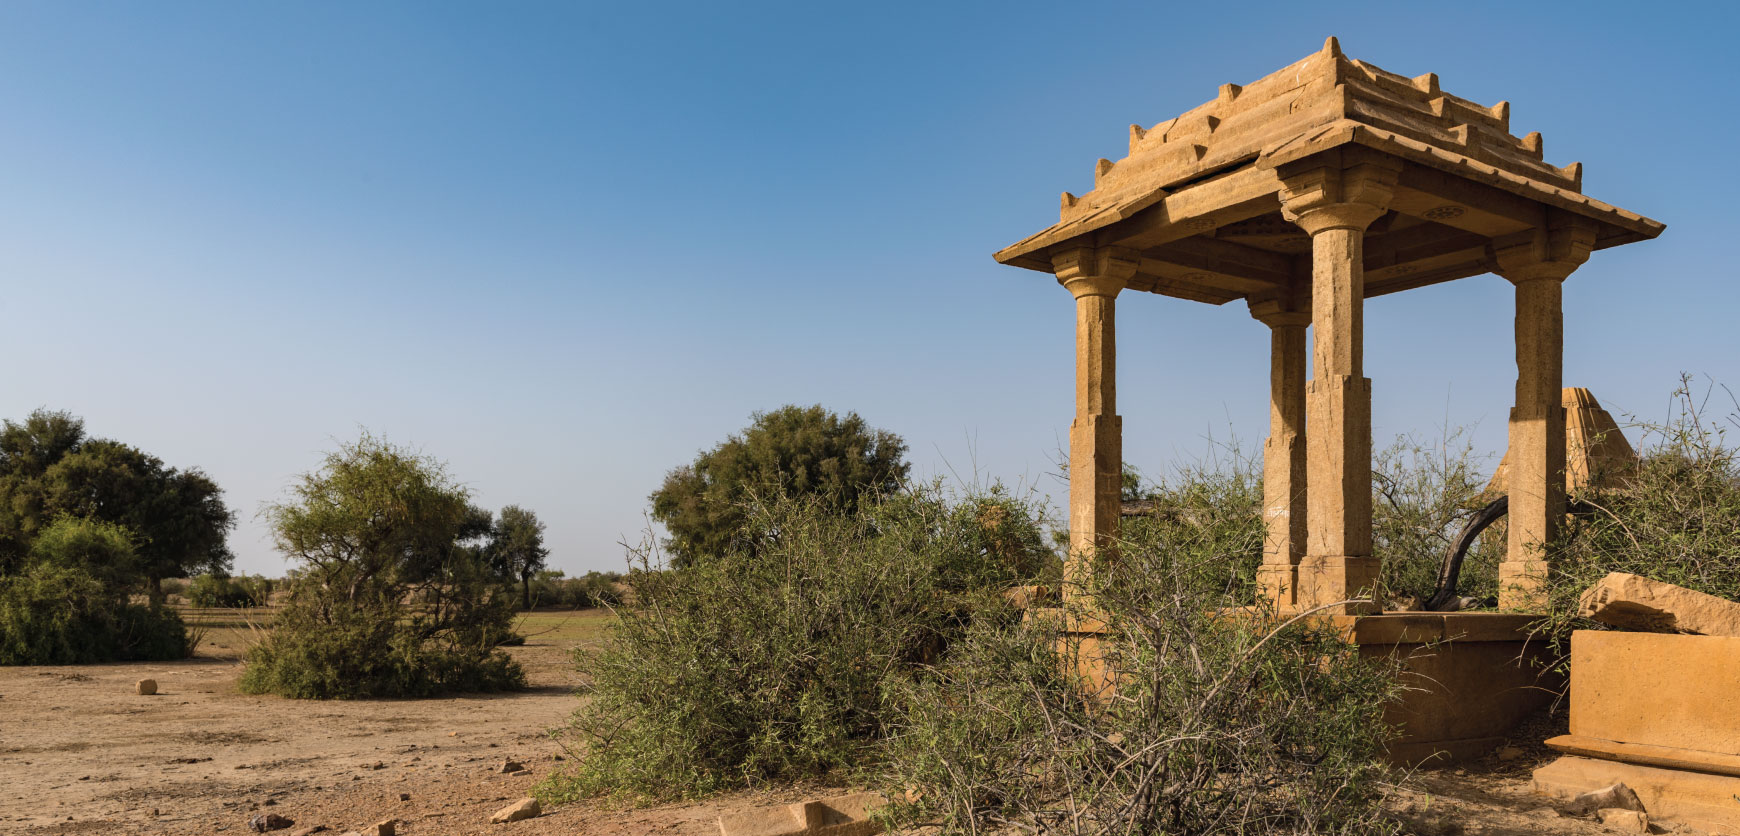 Suryagarh – Bike Trail in Thar Desert